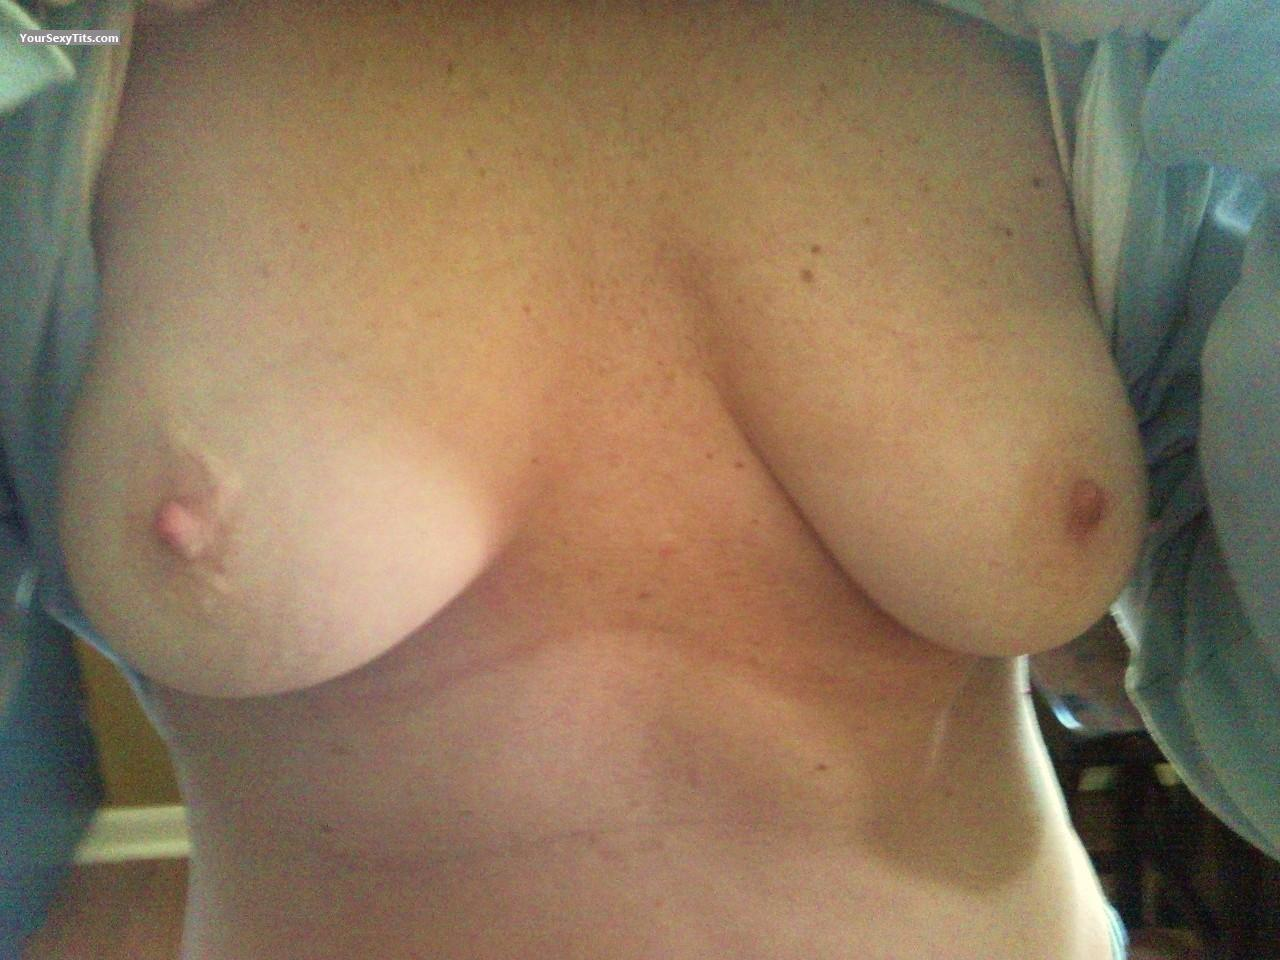 Tit Flash: Small Tits - 45 Year Old MILF from United States